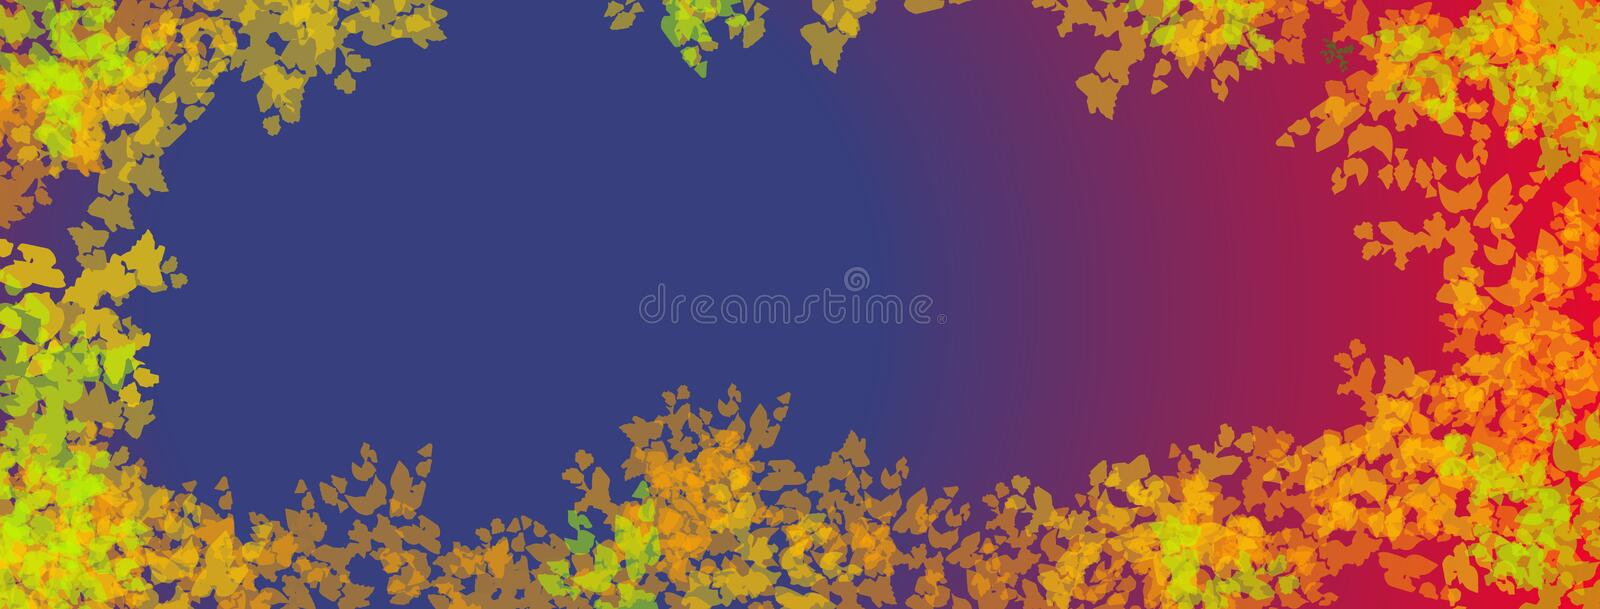 A web banner with a blue and red background and fall colored leaves around border royalty free illustration